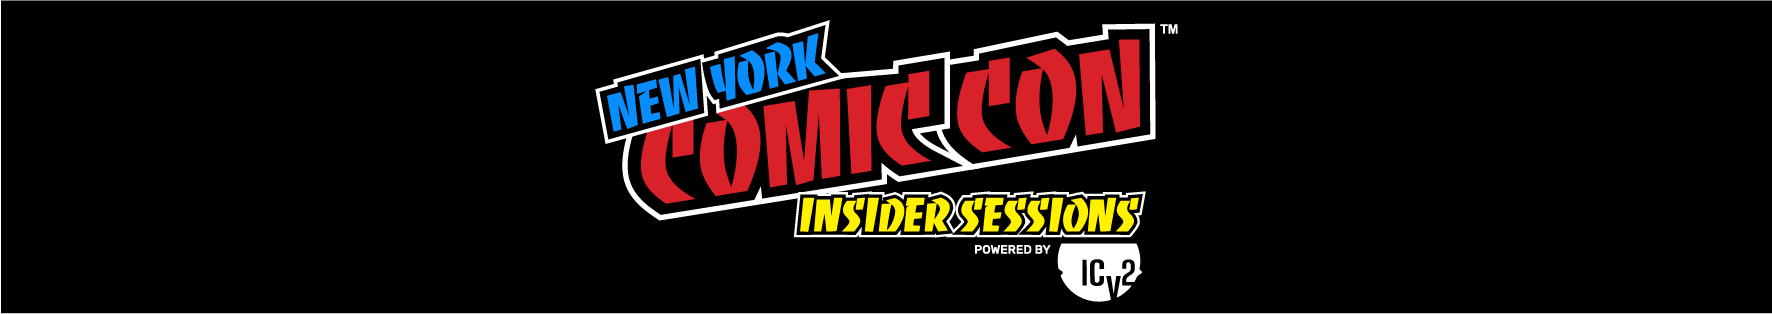 Tickets for NYCC Insider Sessions powered by ICv2 in New York from ShowClix